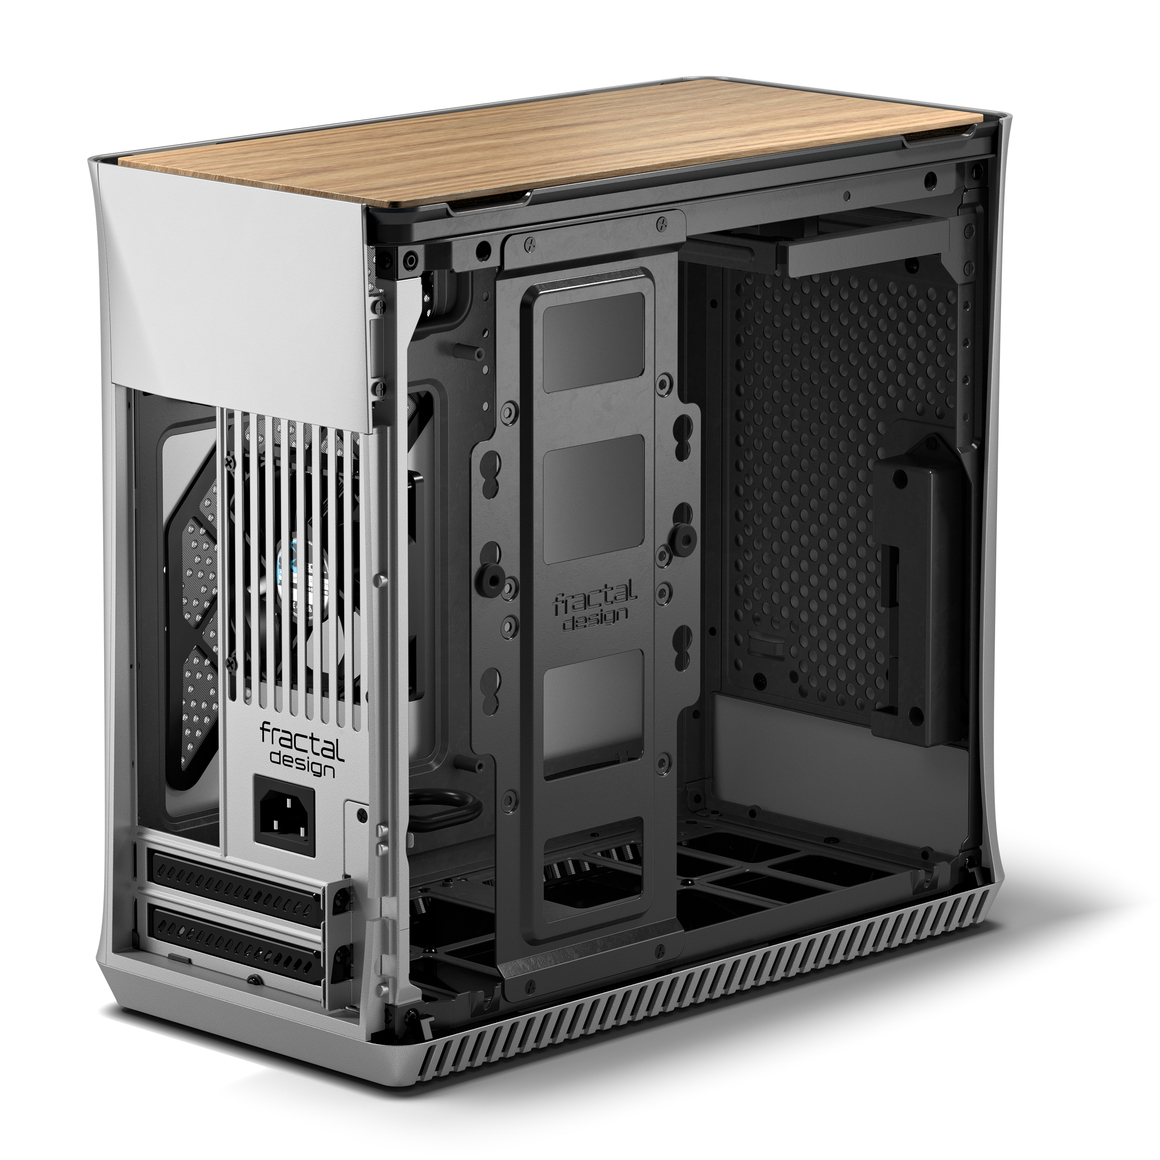 Fractal design Era ITX 1